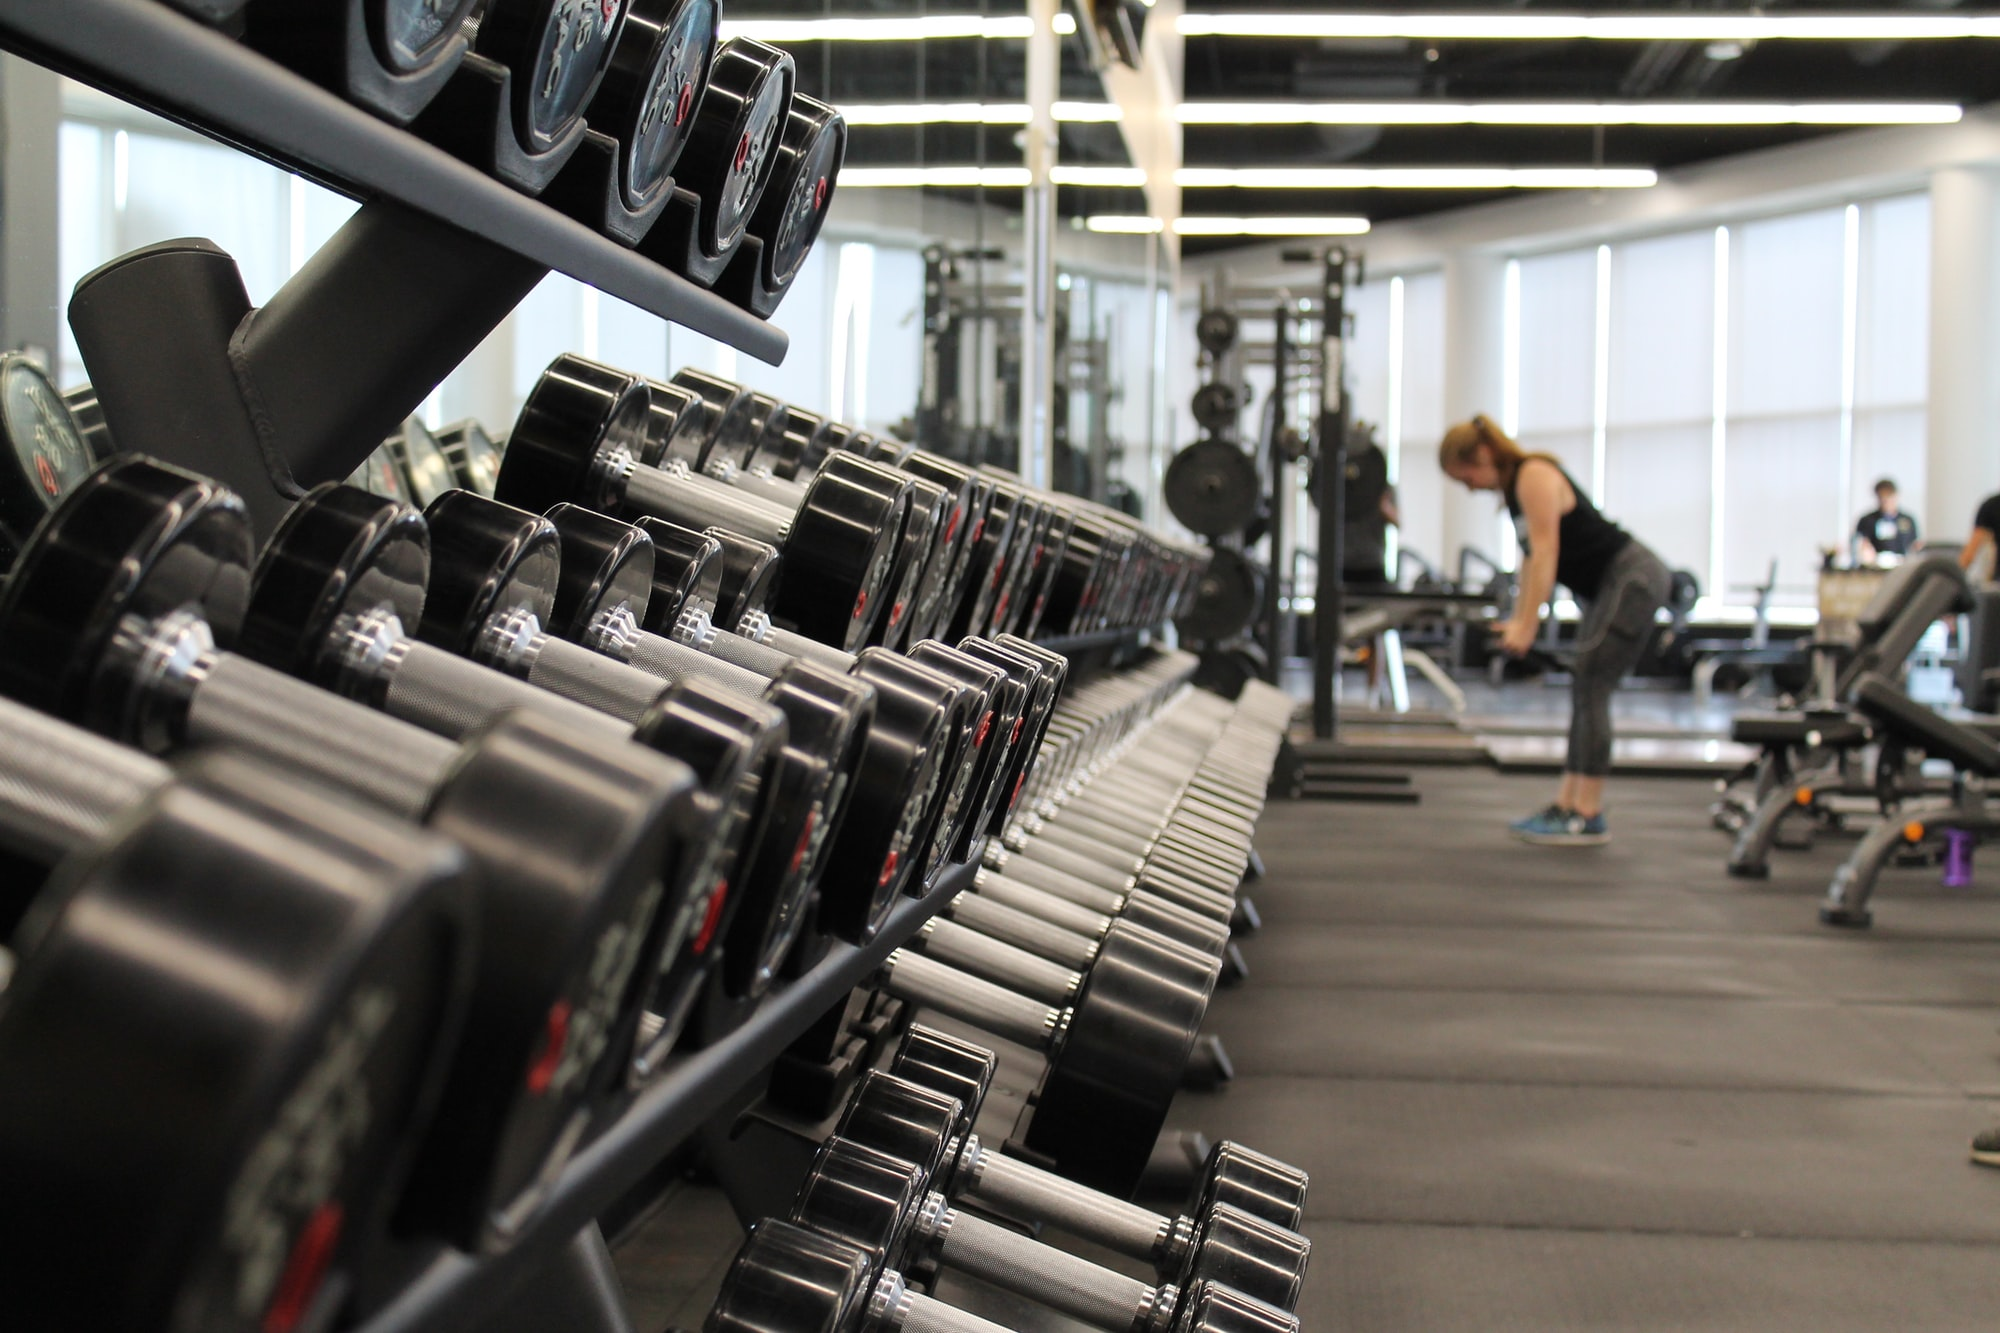 Accounting for personal trainers - Tips for managing your fitness business